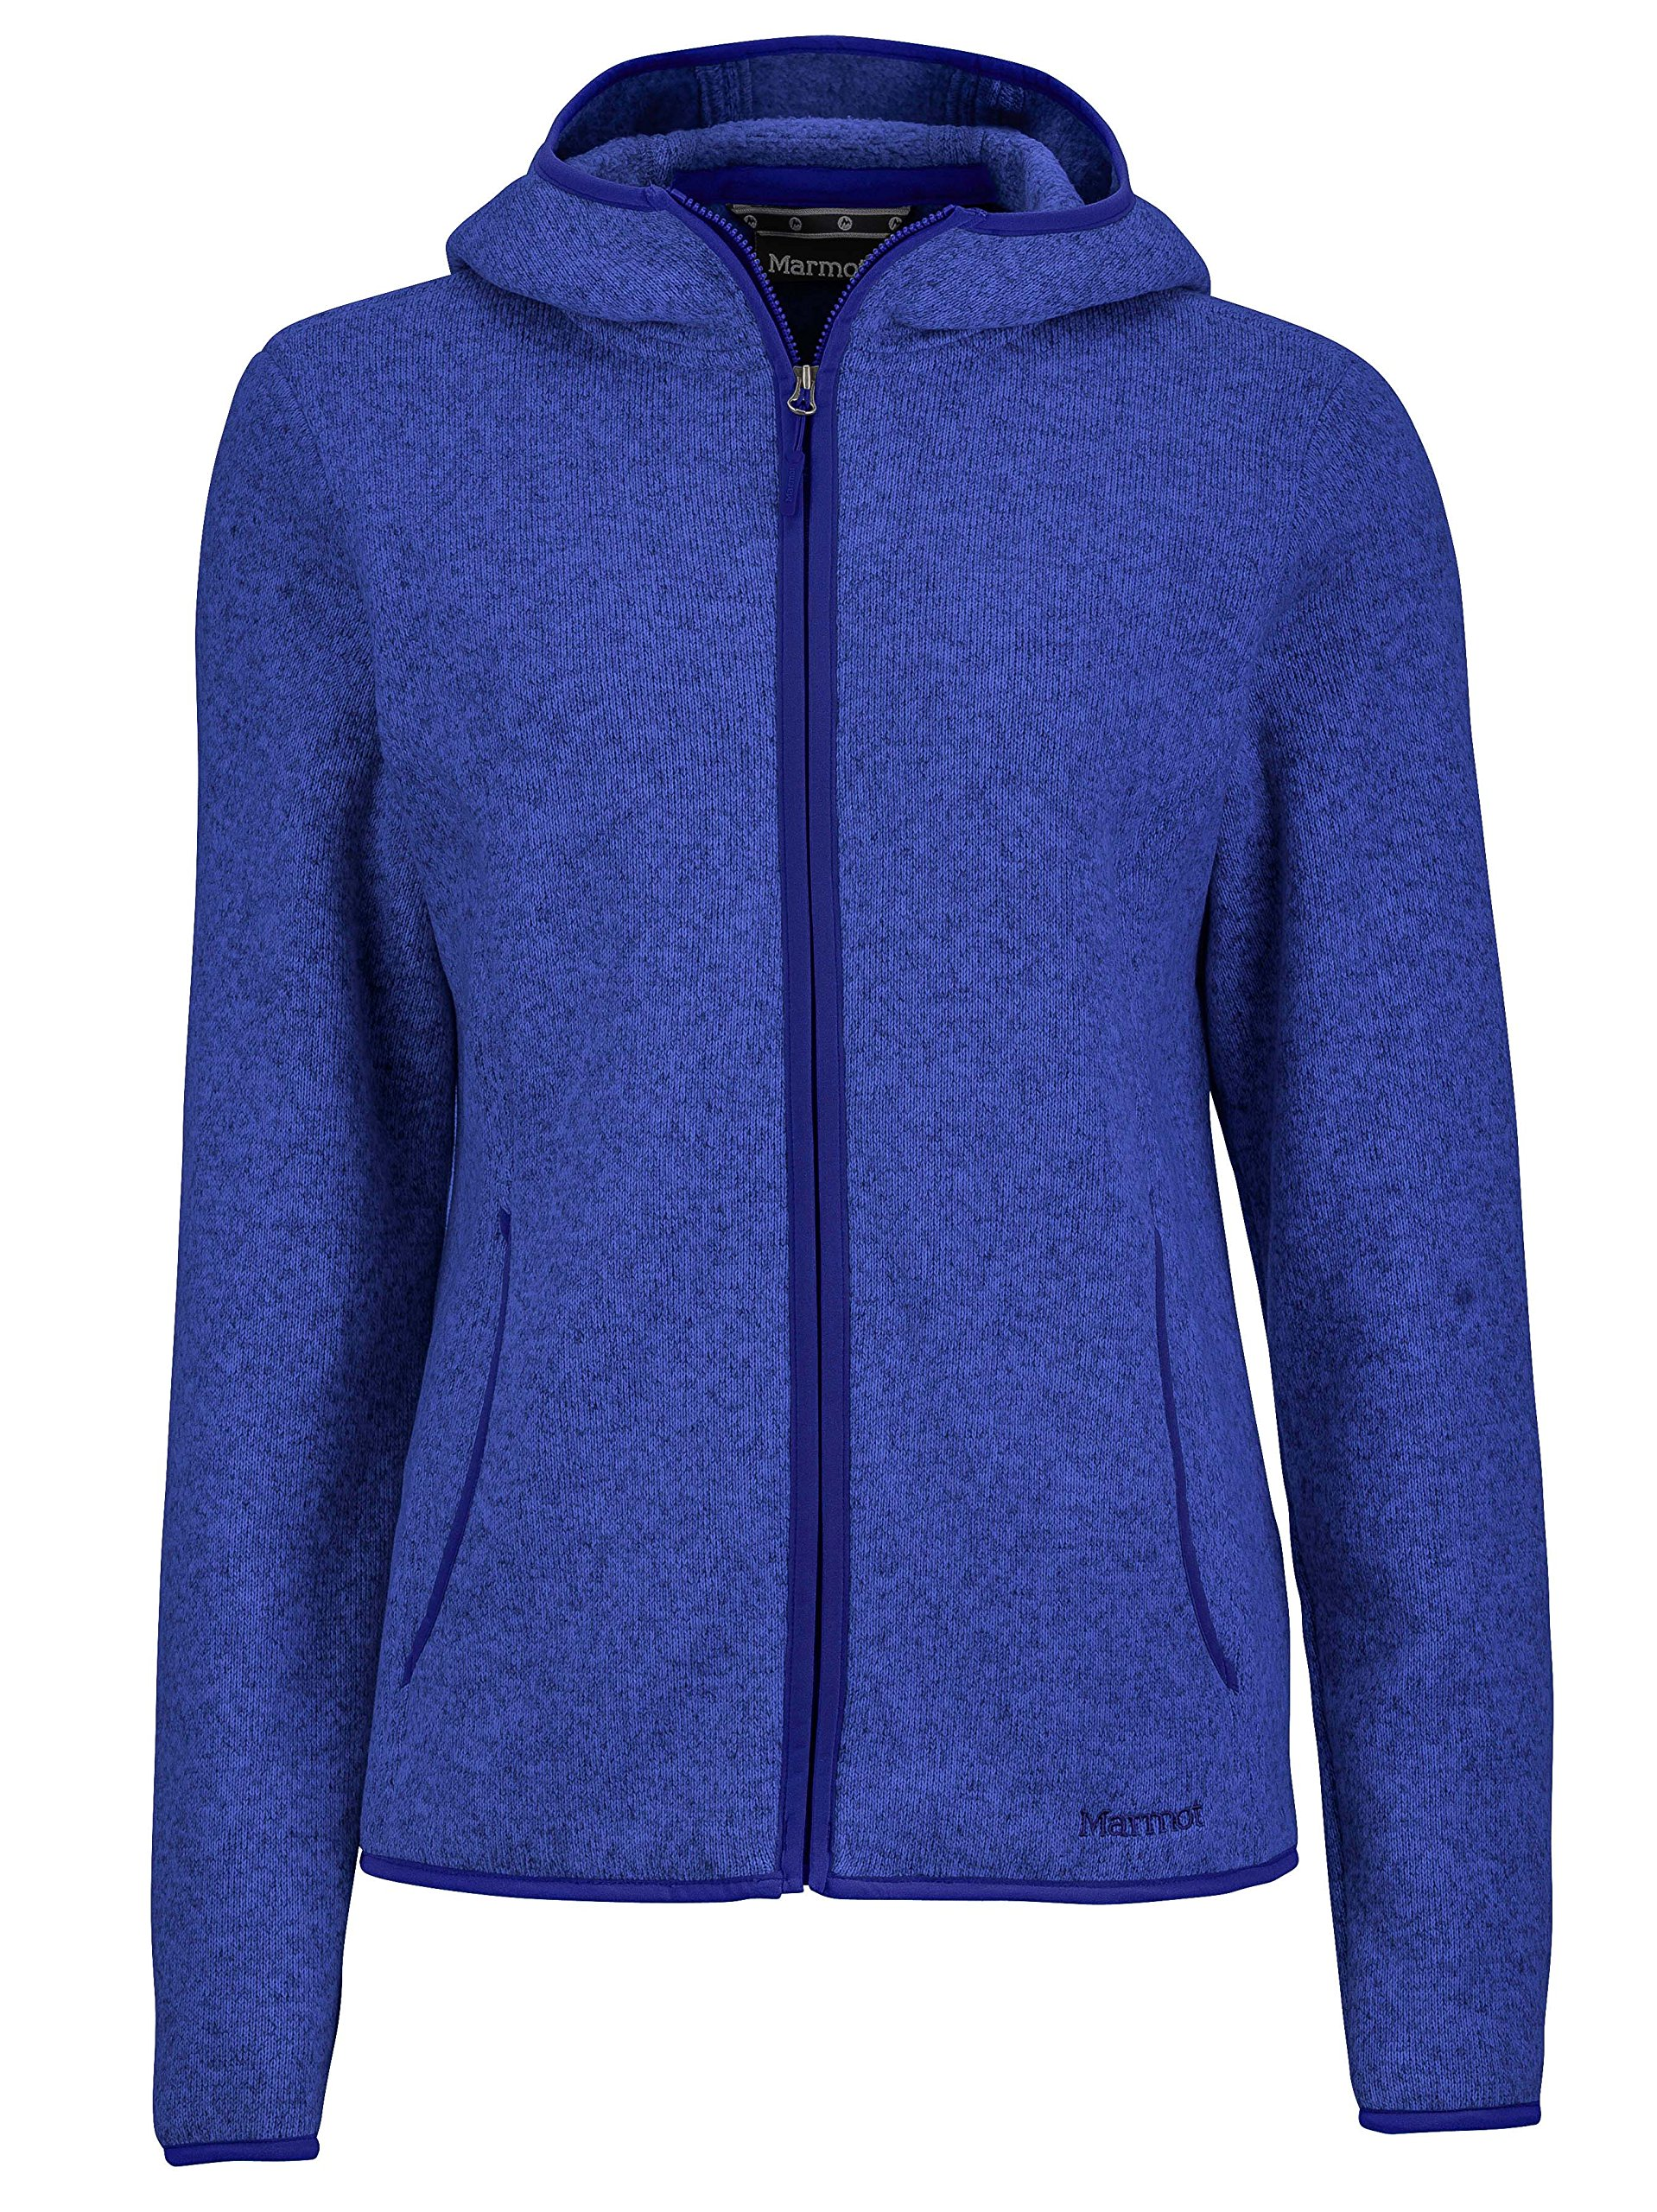 Marmot Norhiem Women's Sweater Knit Fleece Jacket, Gemstone, Small by Marmot